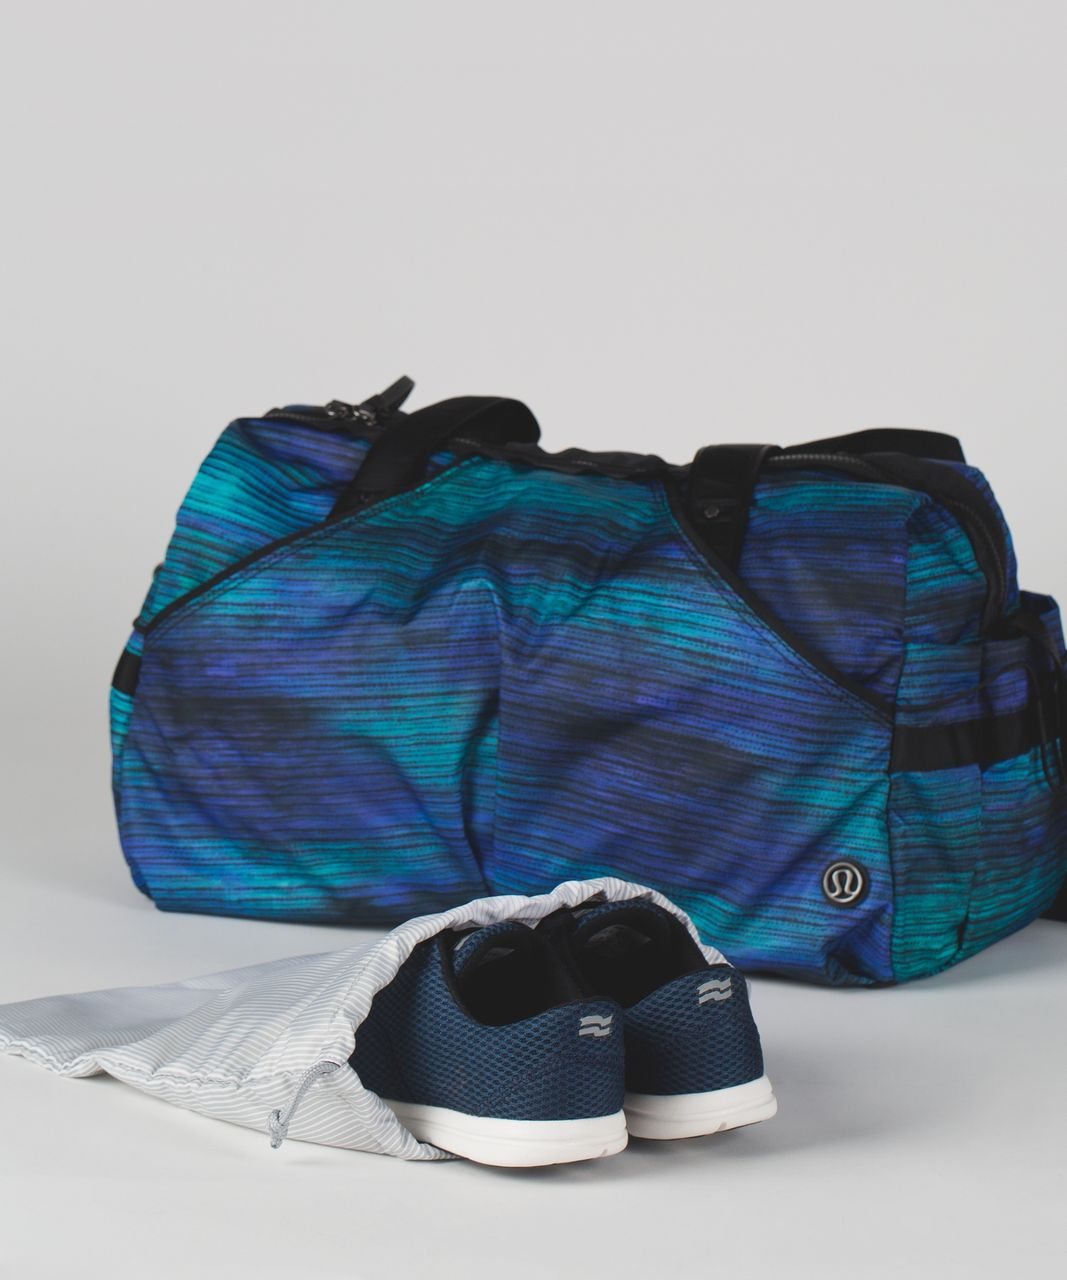 Lululemon Extra Mile Duffel - Windy Wash Multi / Black